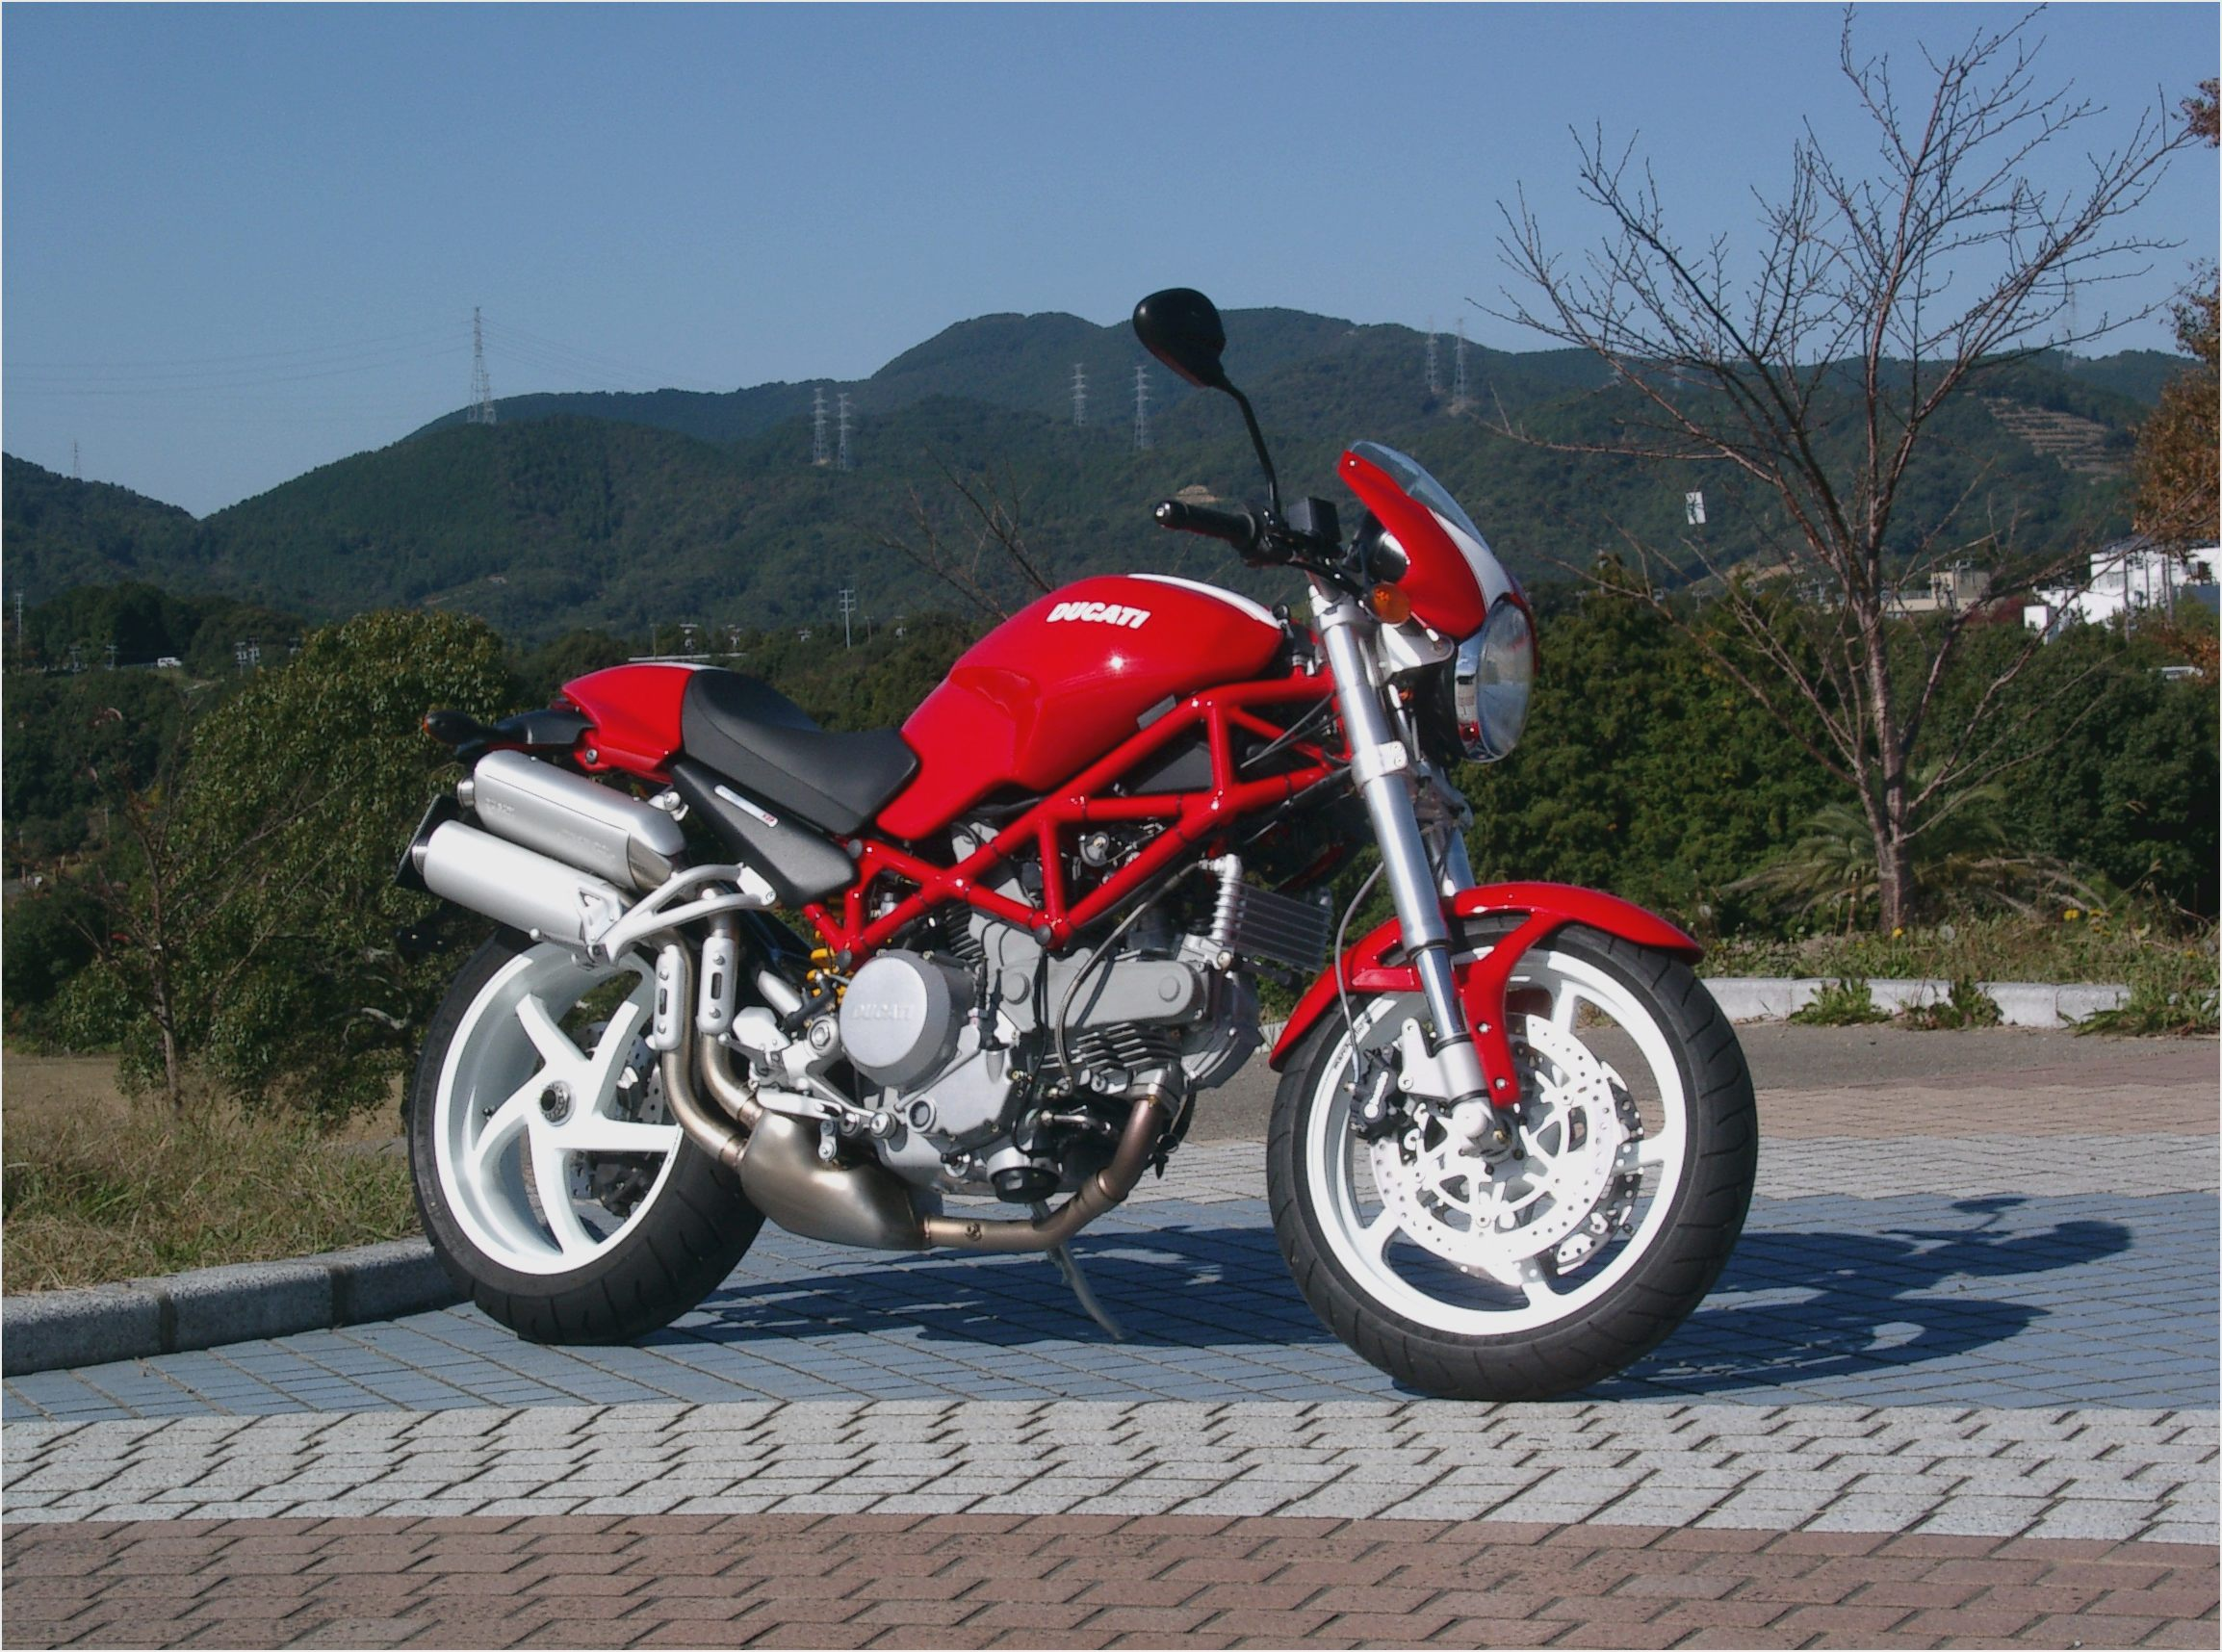 Ducati Monster 800 images #154654